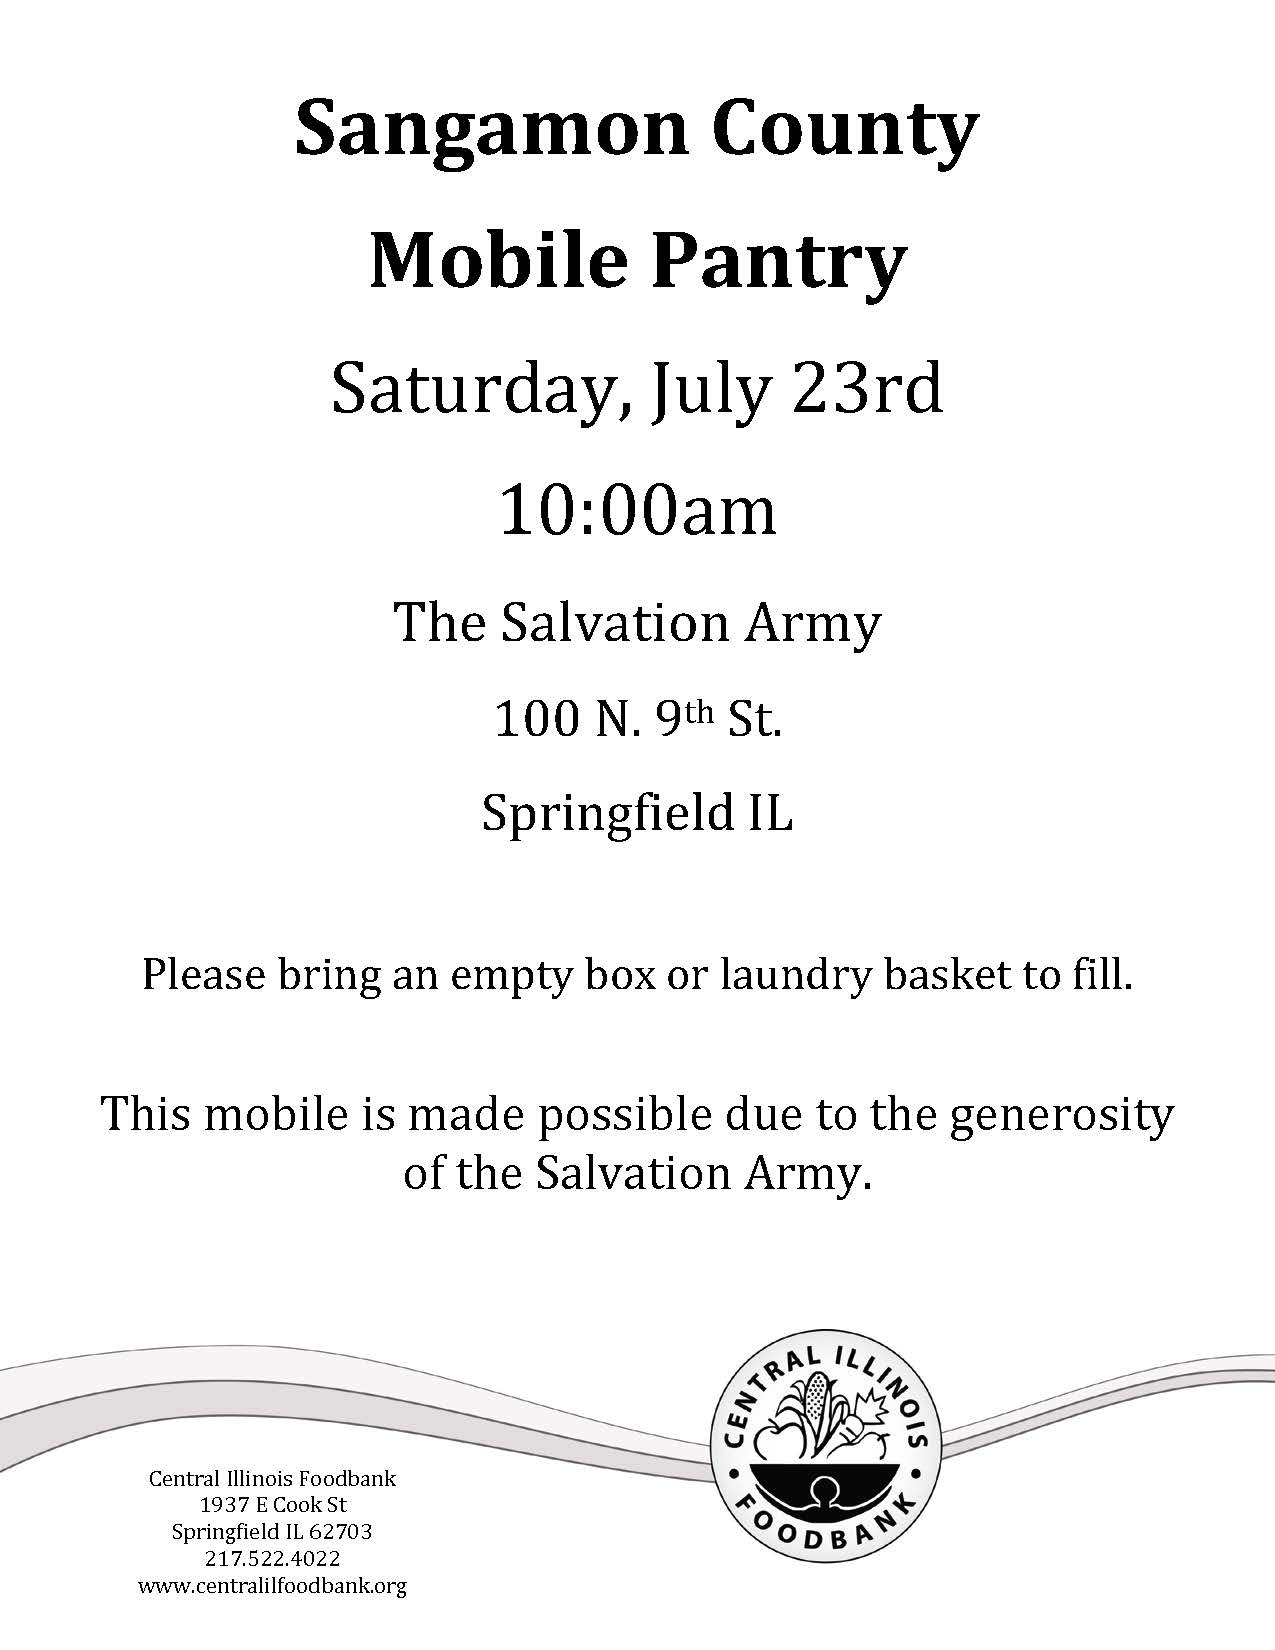 Sangamon County Mobile Food Pantry